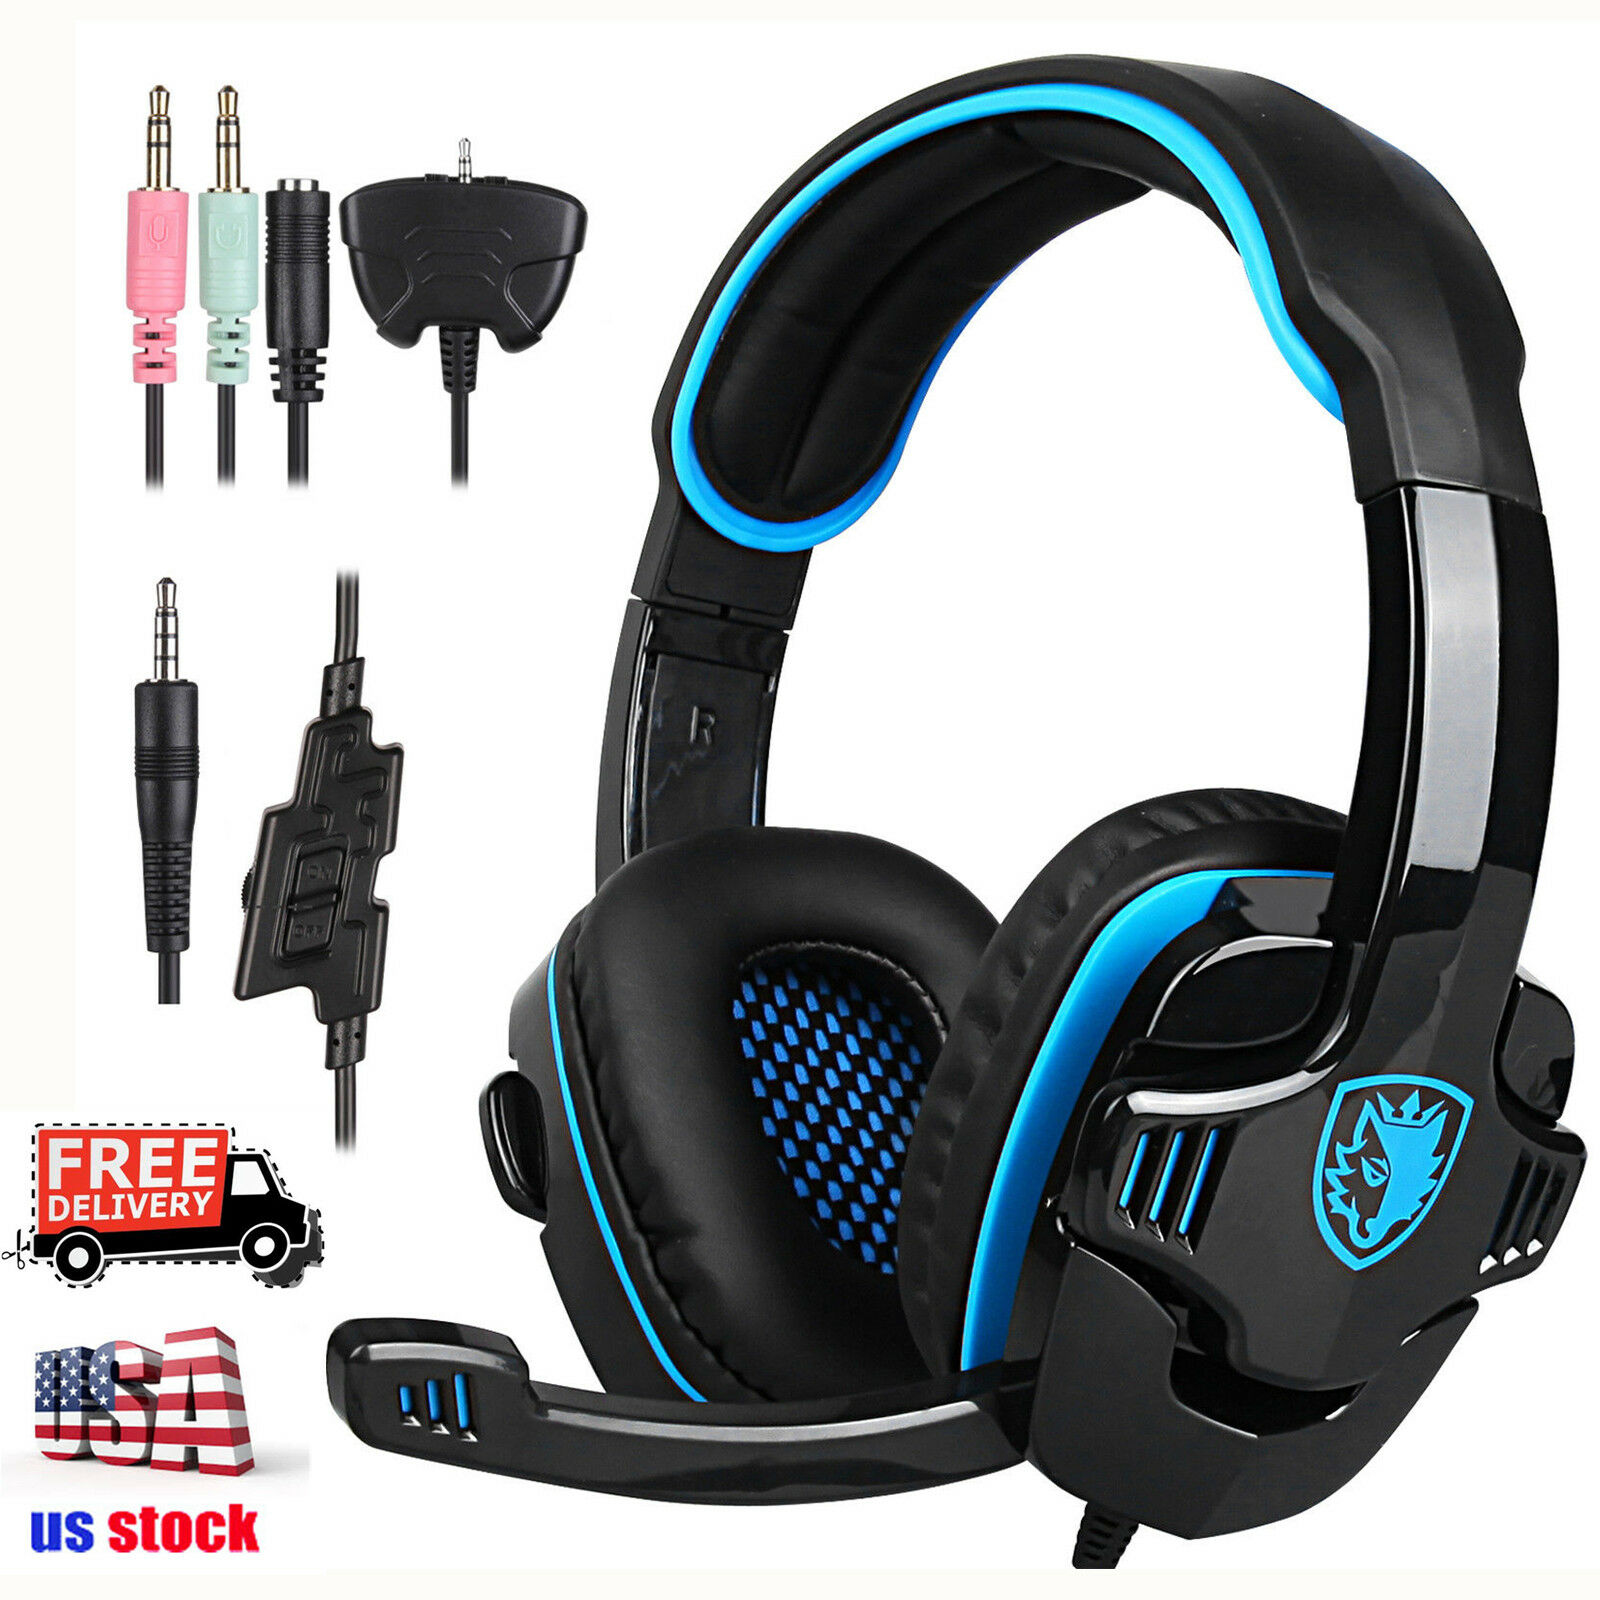 sa 708 gt gaming headset headphone